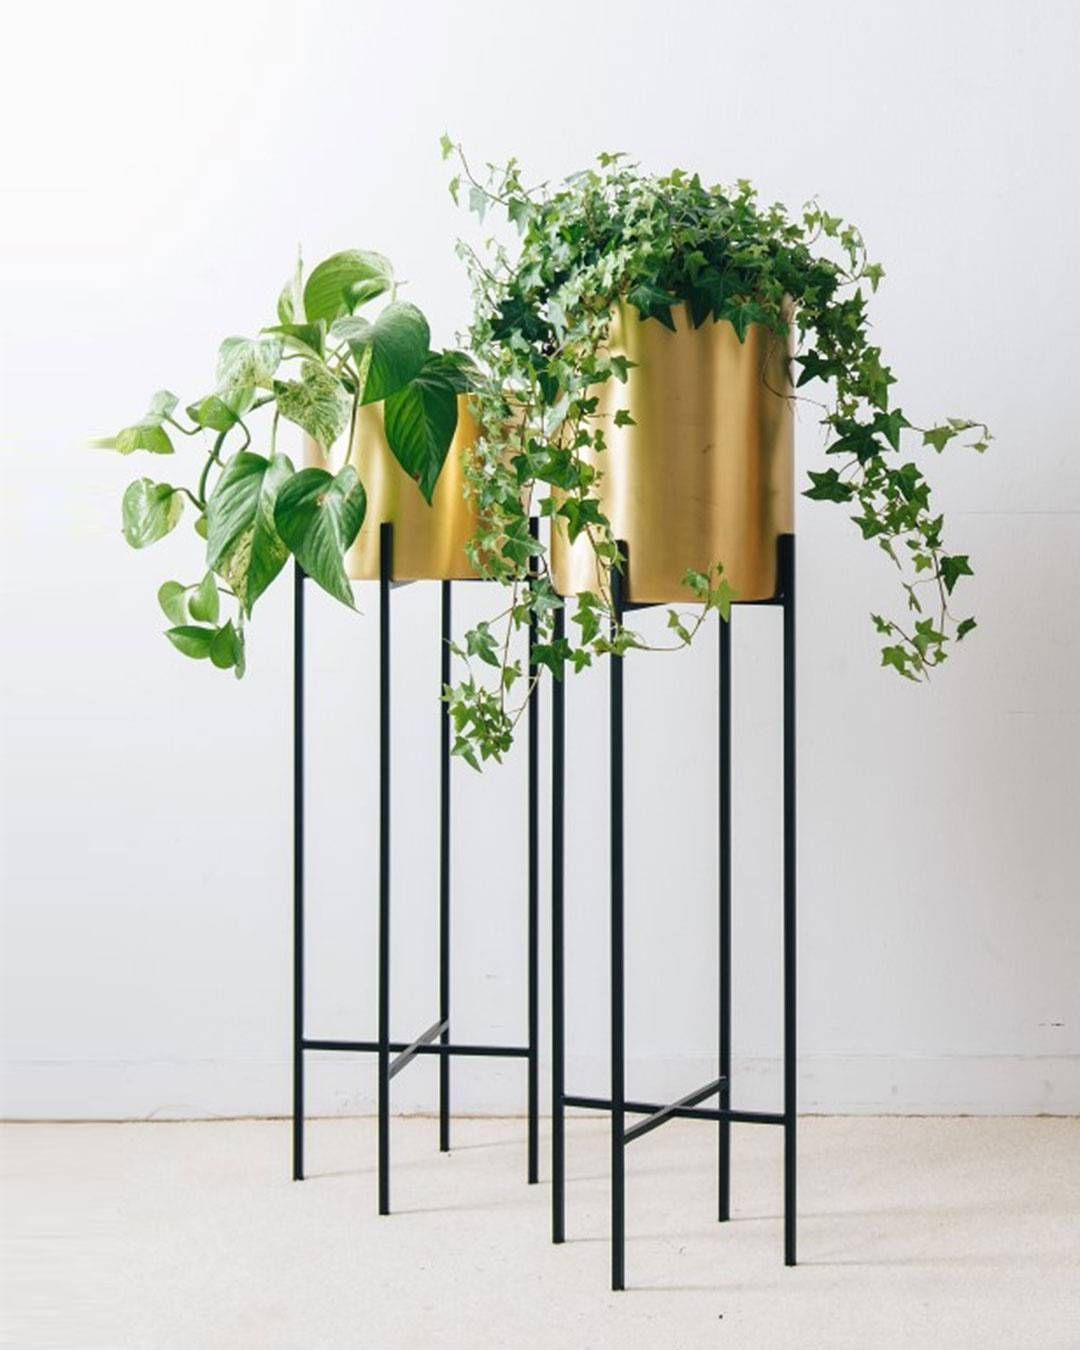 Bring Nature Into The Home With Our Deni Plant Stand And Brass Pot Countryroadstyle Plant Stand House Plants